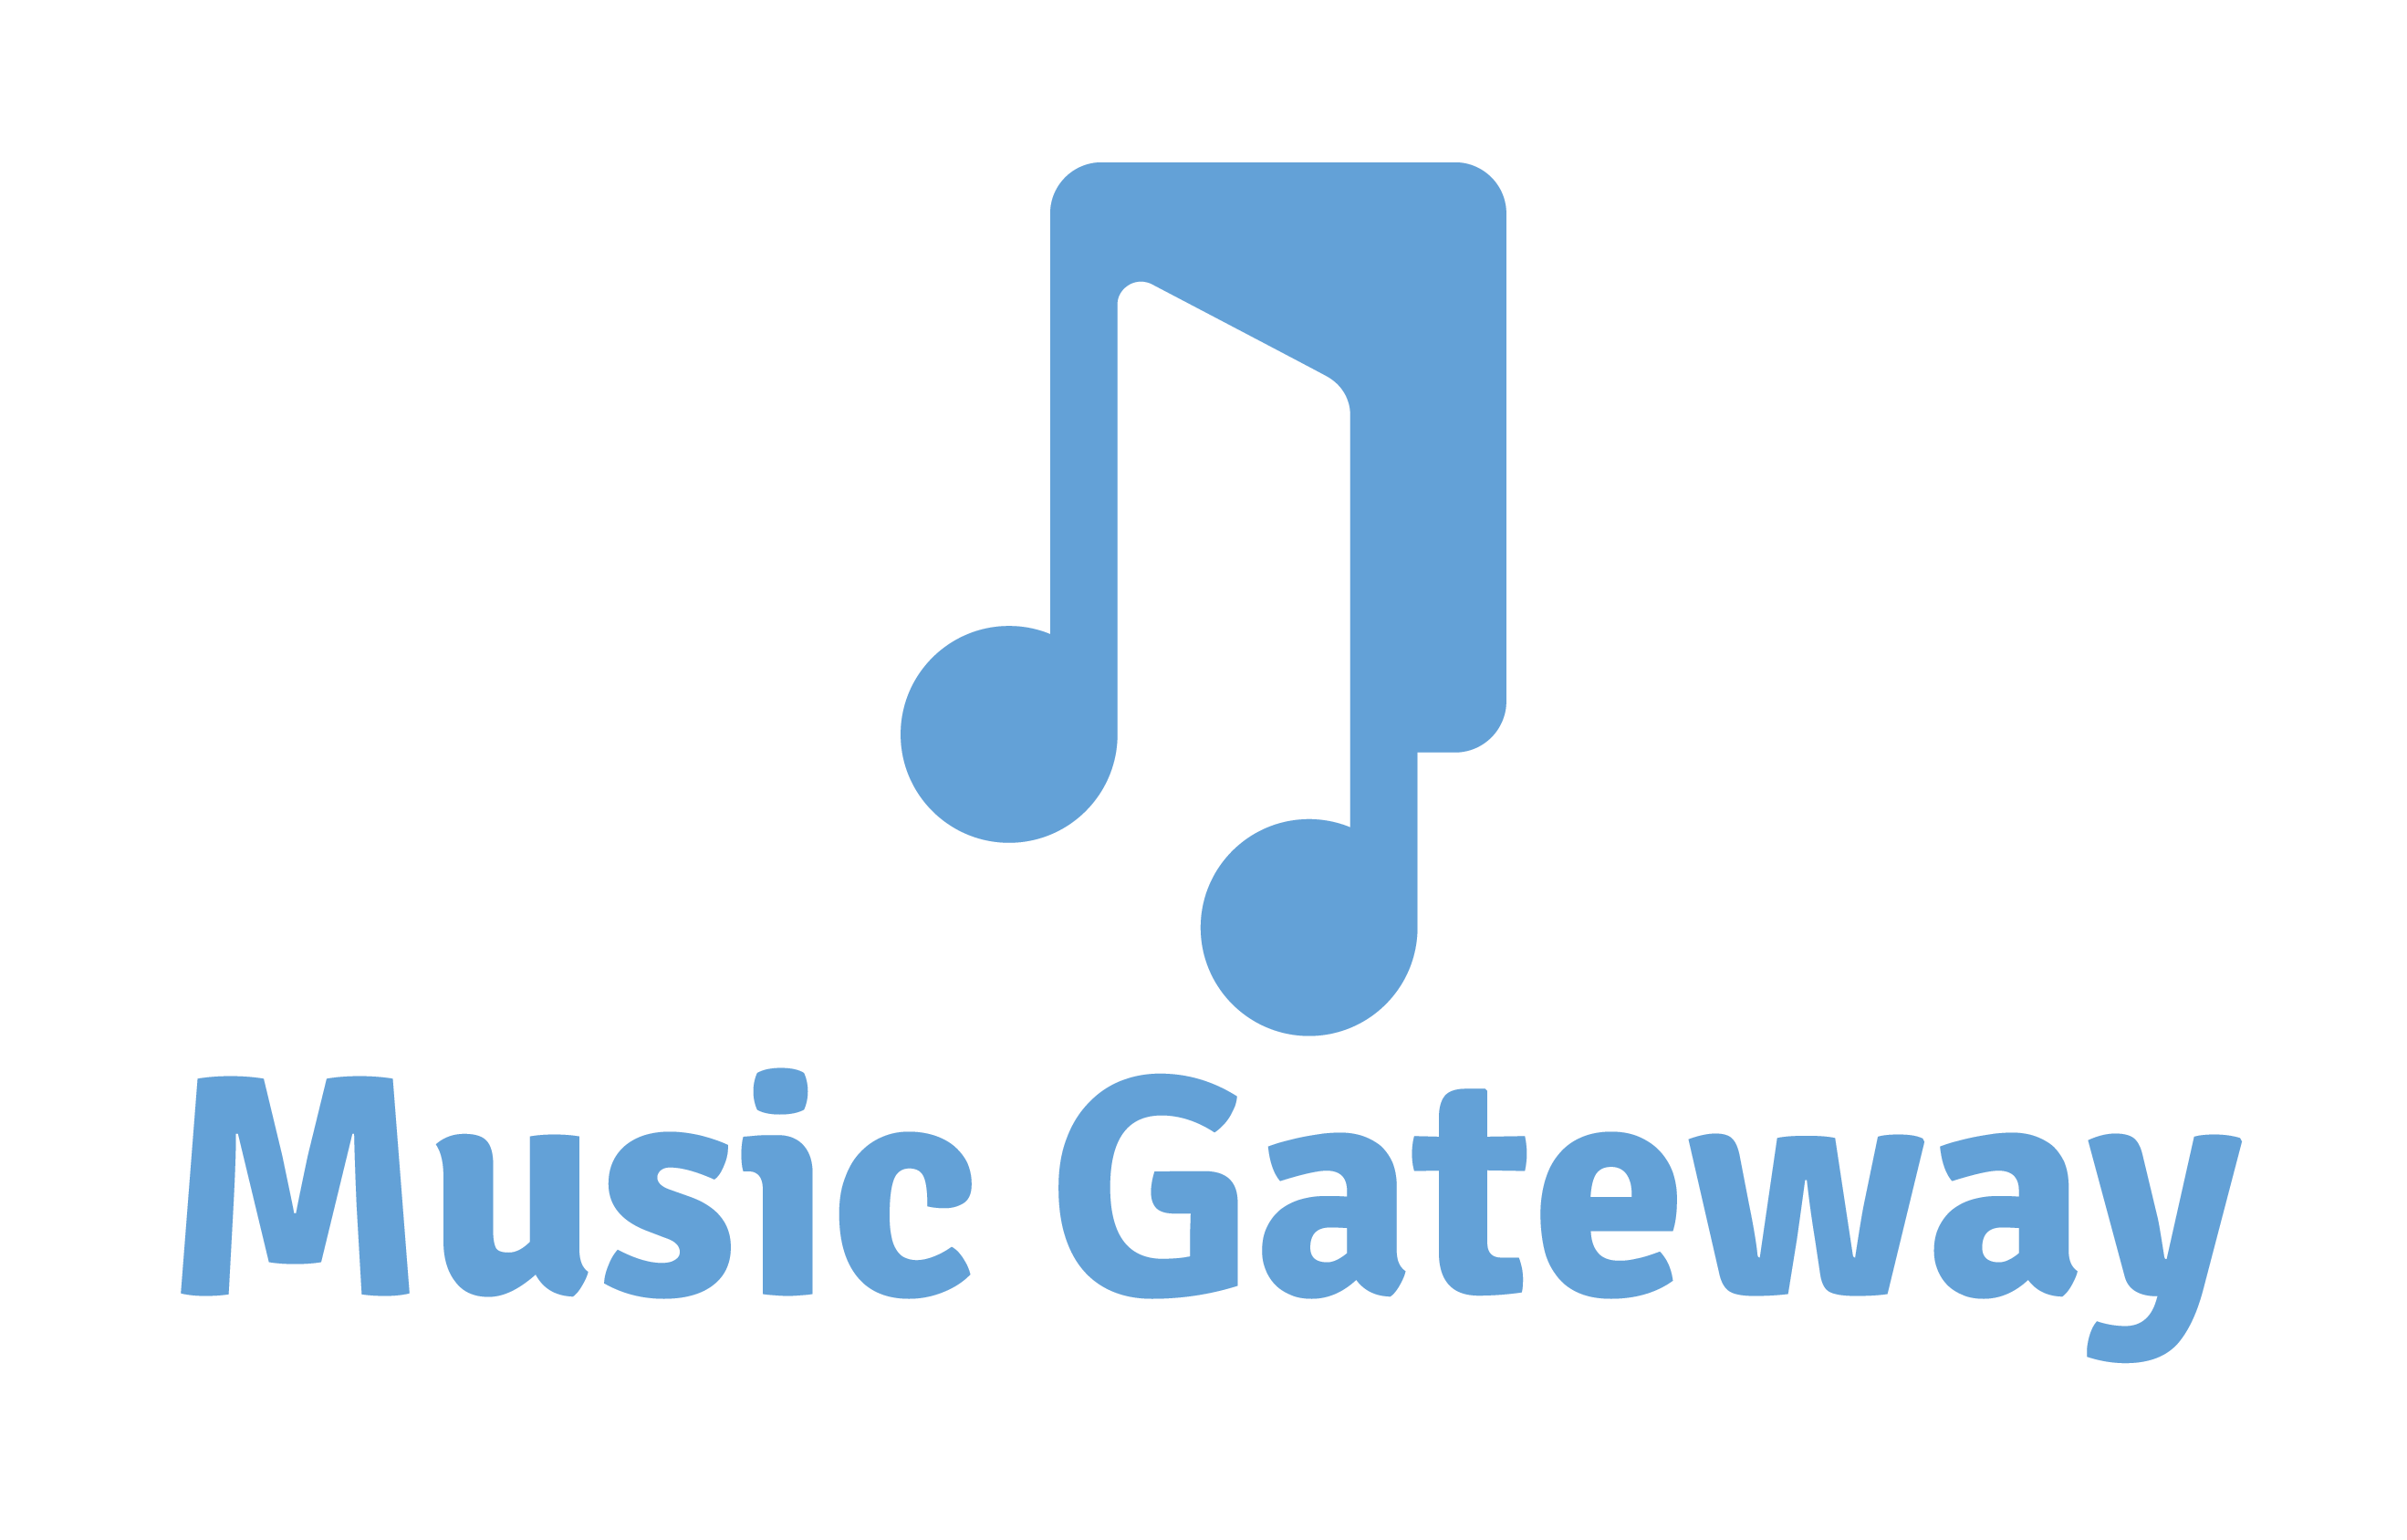 https://www.imoveilive.com/wp-content/uploads/2015/08/2015-Music_Gateway_Logo.png